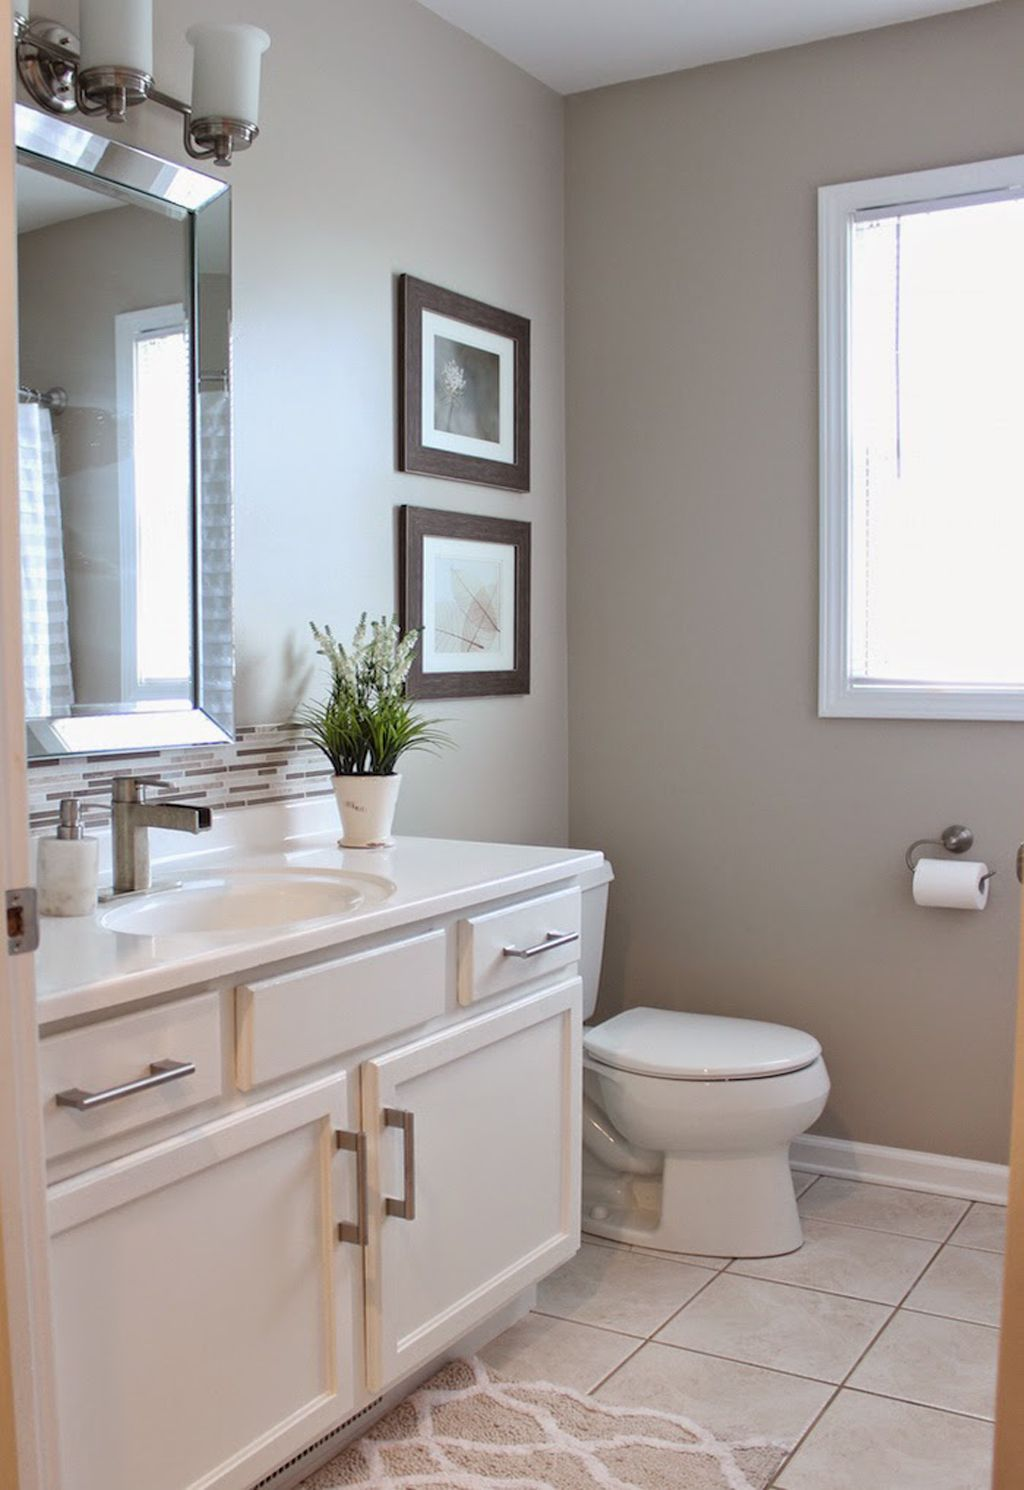 Accessible Beige Color Review By Laura Rugh Rugh Design Beige Tile Bathroom Bathroom Vanity Remodel Best Bathroom Paint Colors